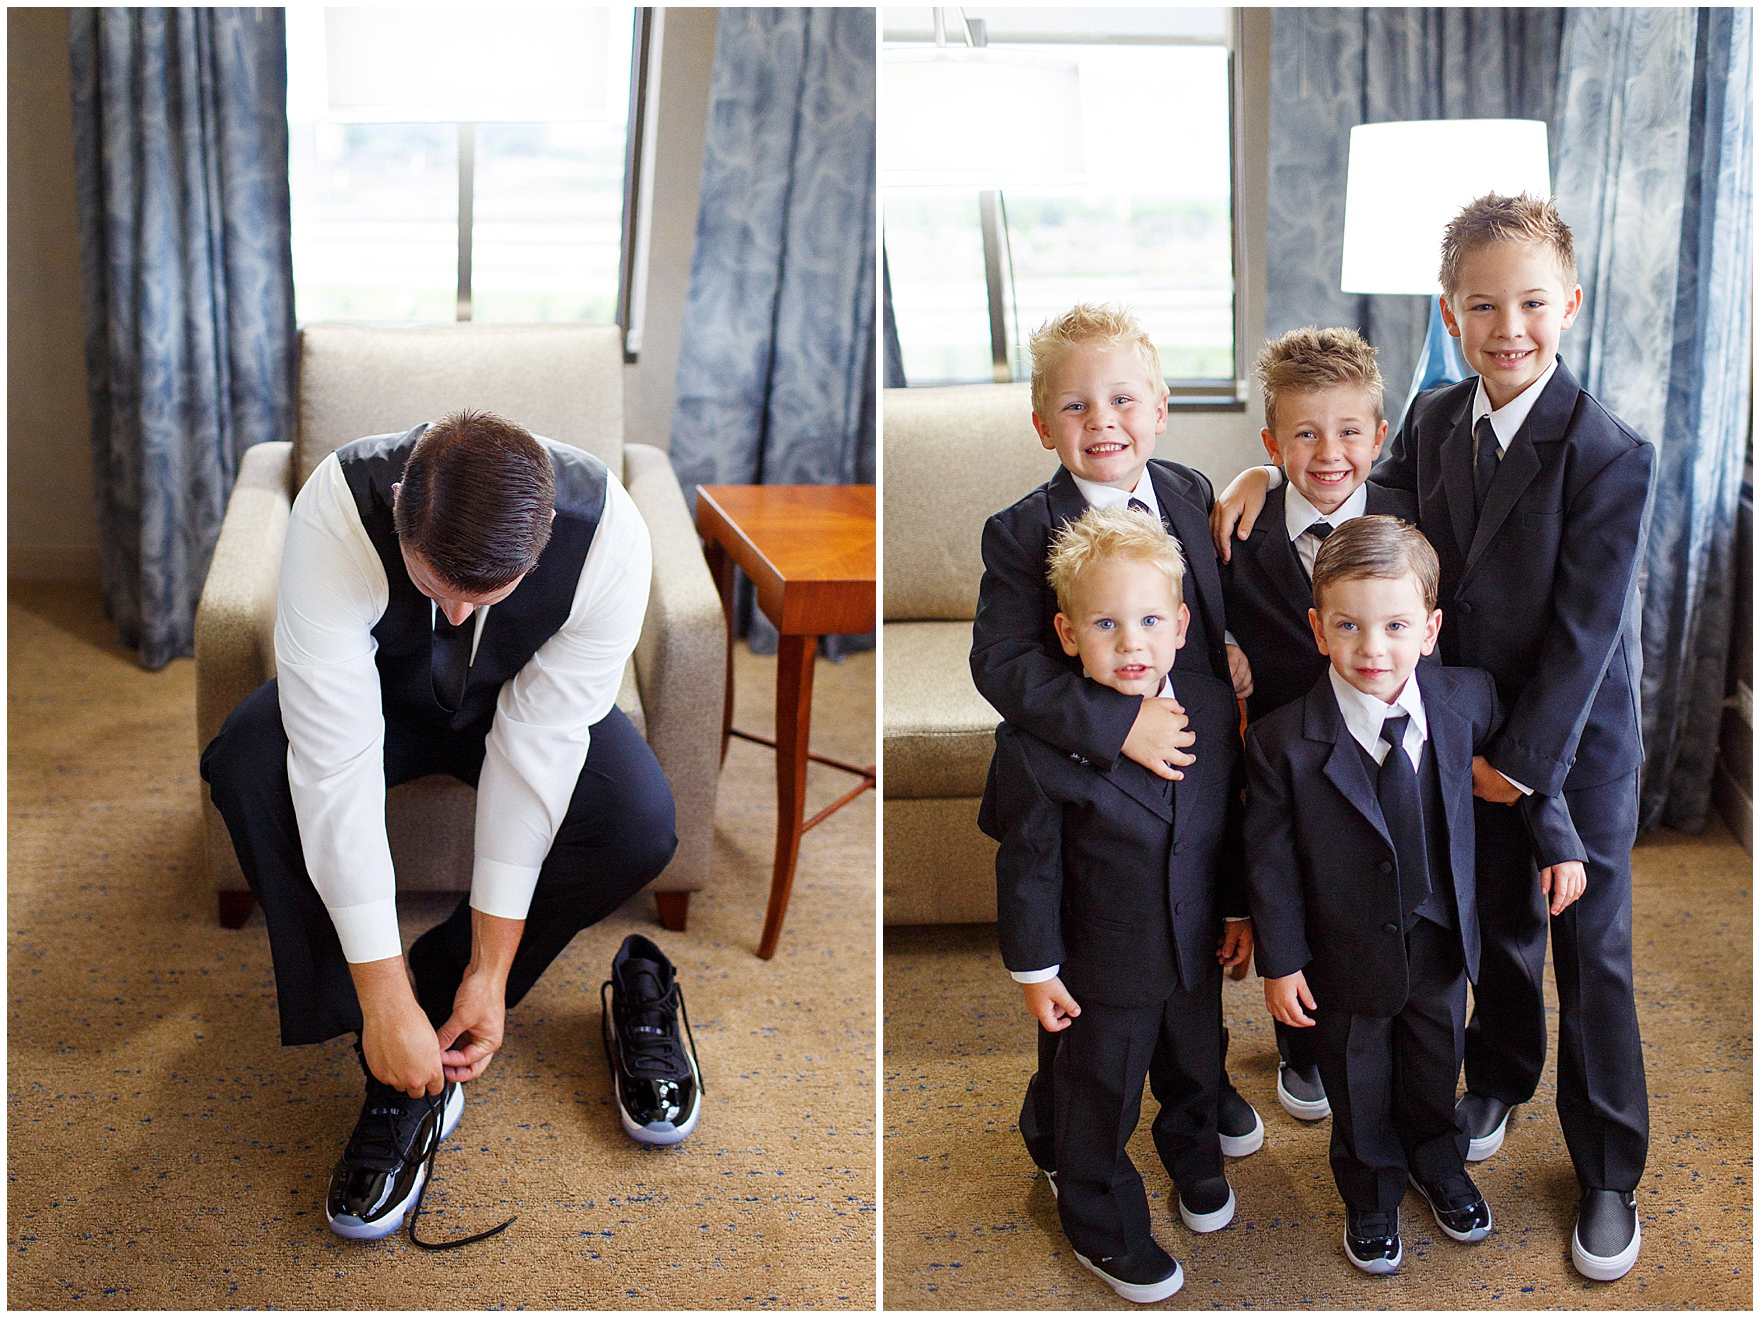 Junior groomsmen and ring bearers get ready for an Itasca Country Club Illinois wedding.